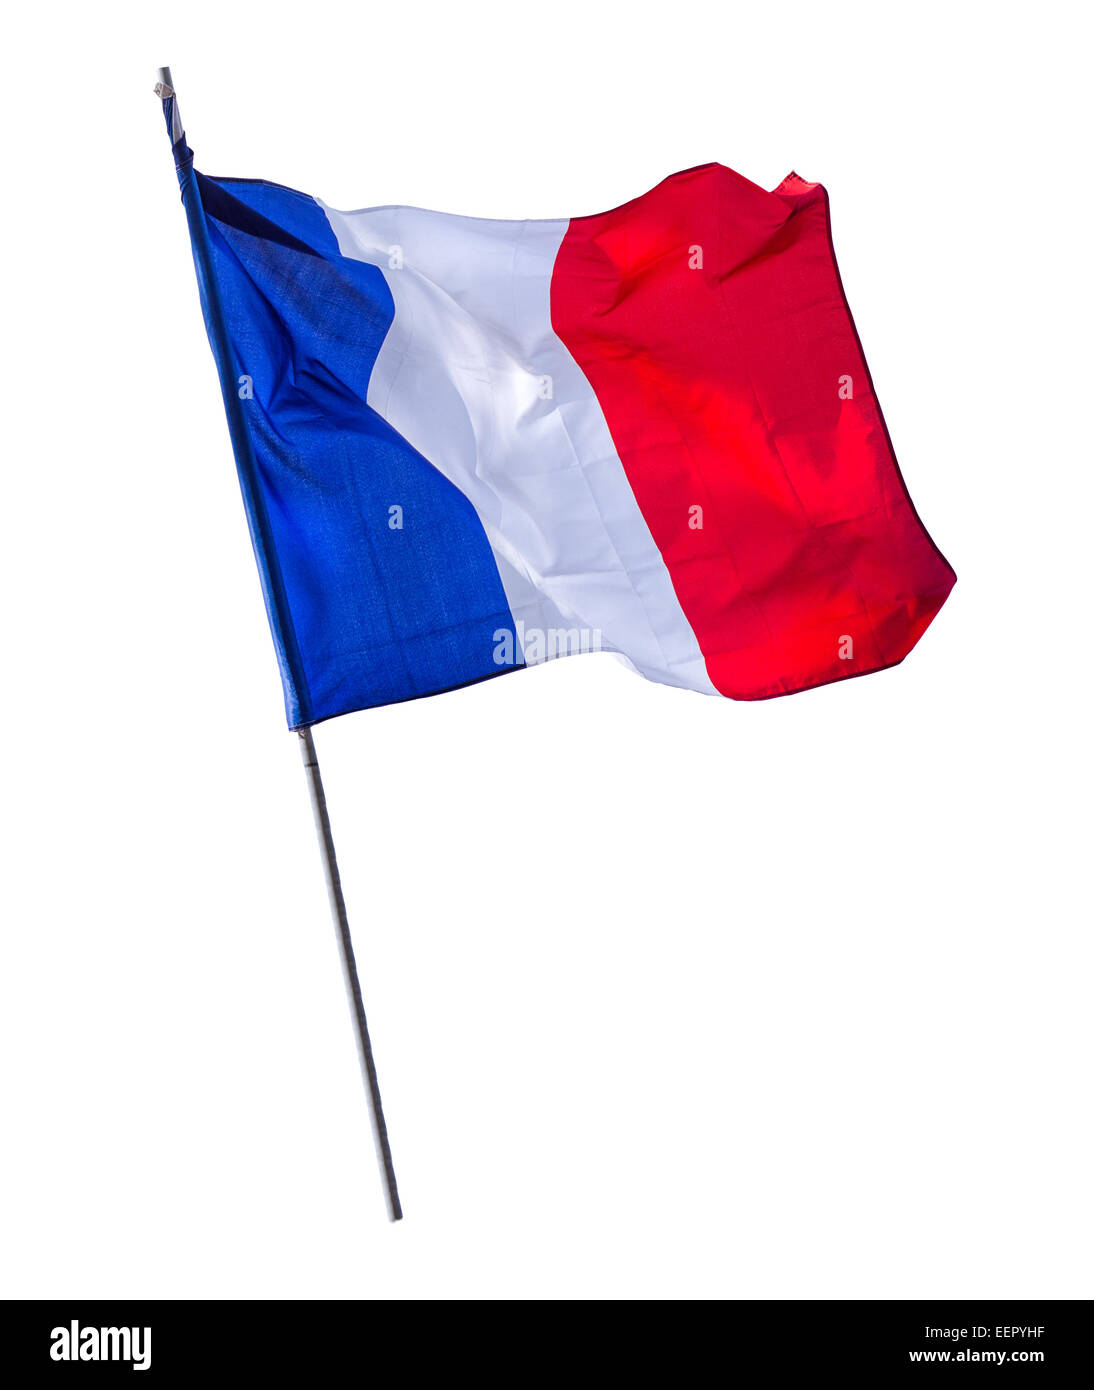 French Flag On A Pole - Stock Image